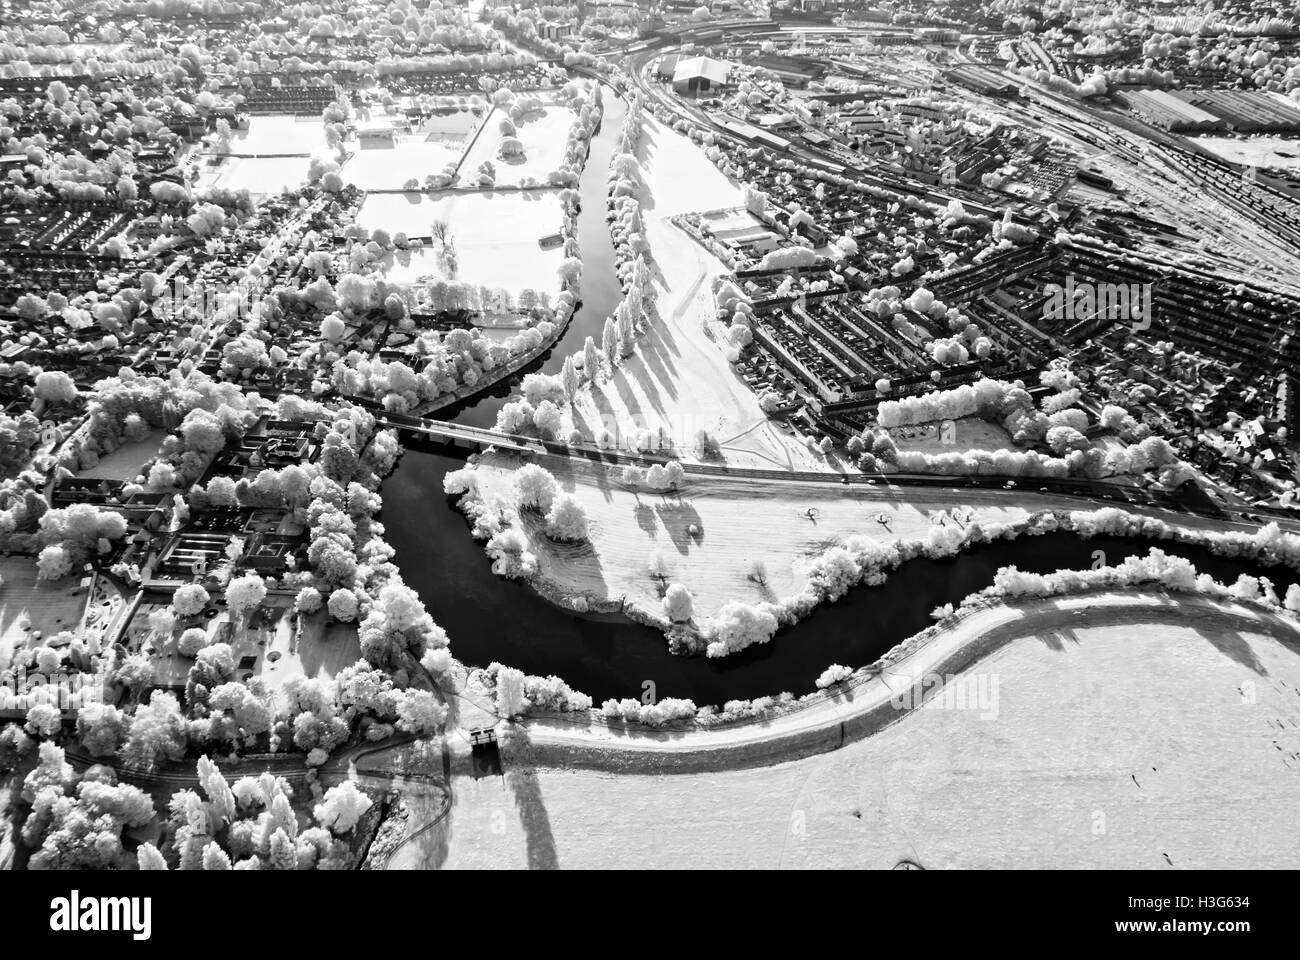 Infra red photograph of York, taken from the air. Photograph shows the River Ouse, trees and fields. - Stock Image